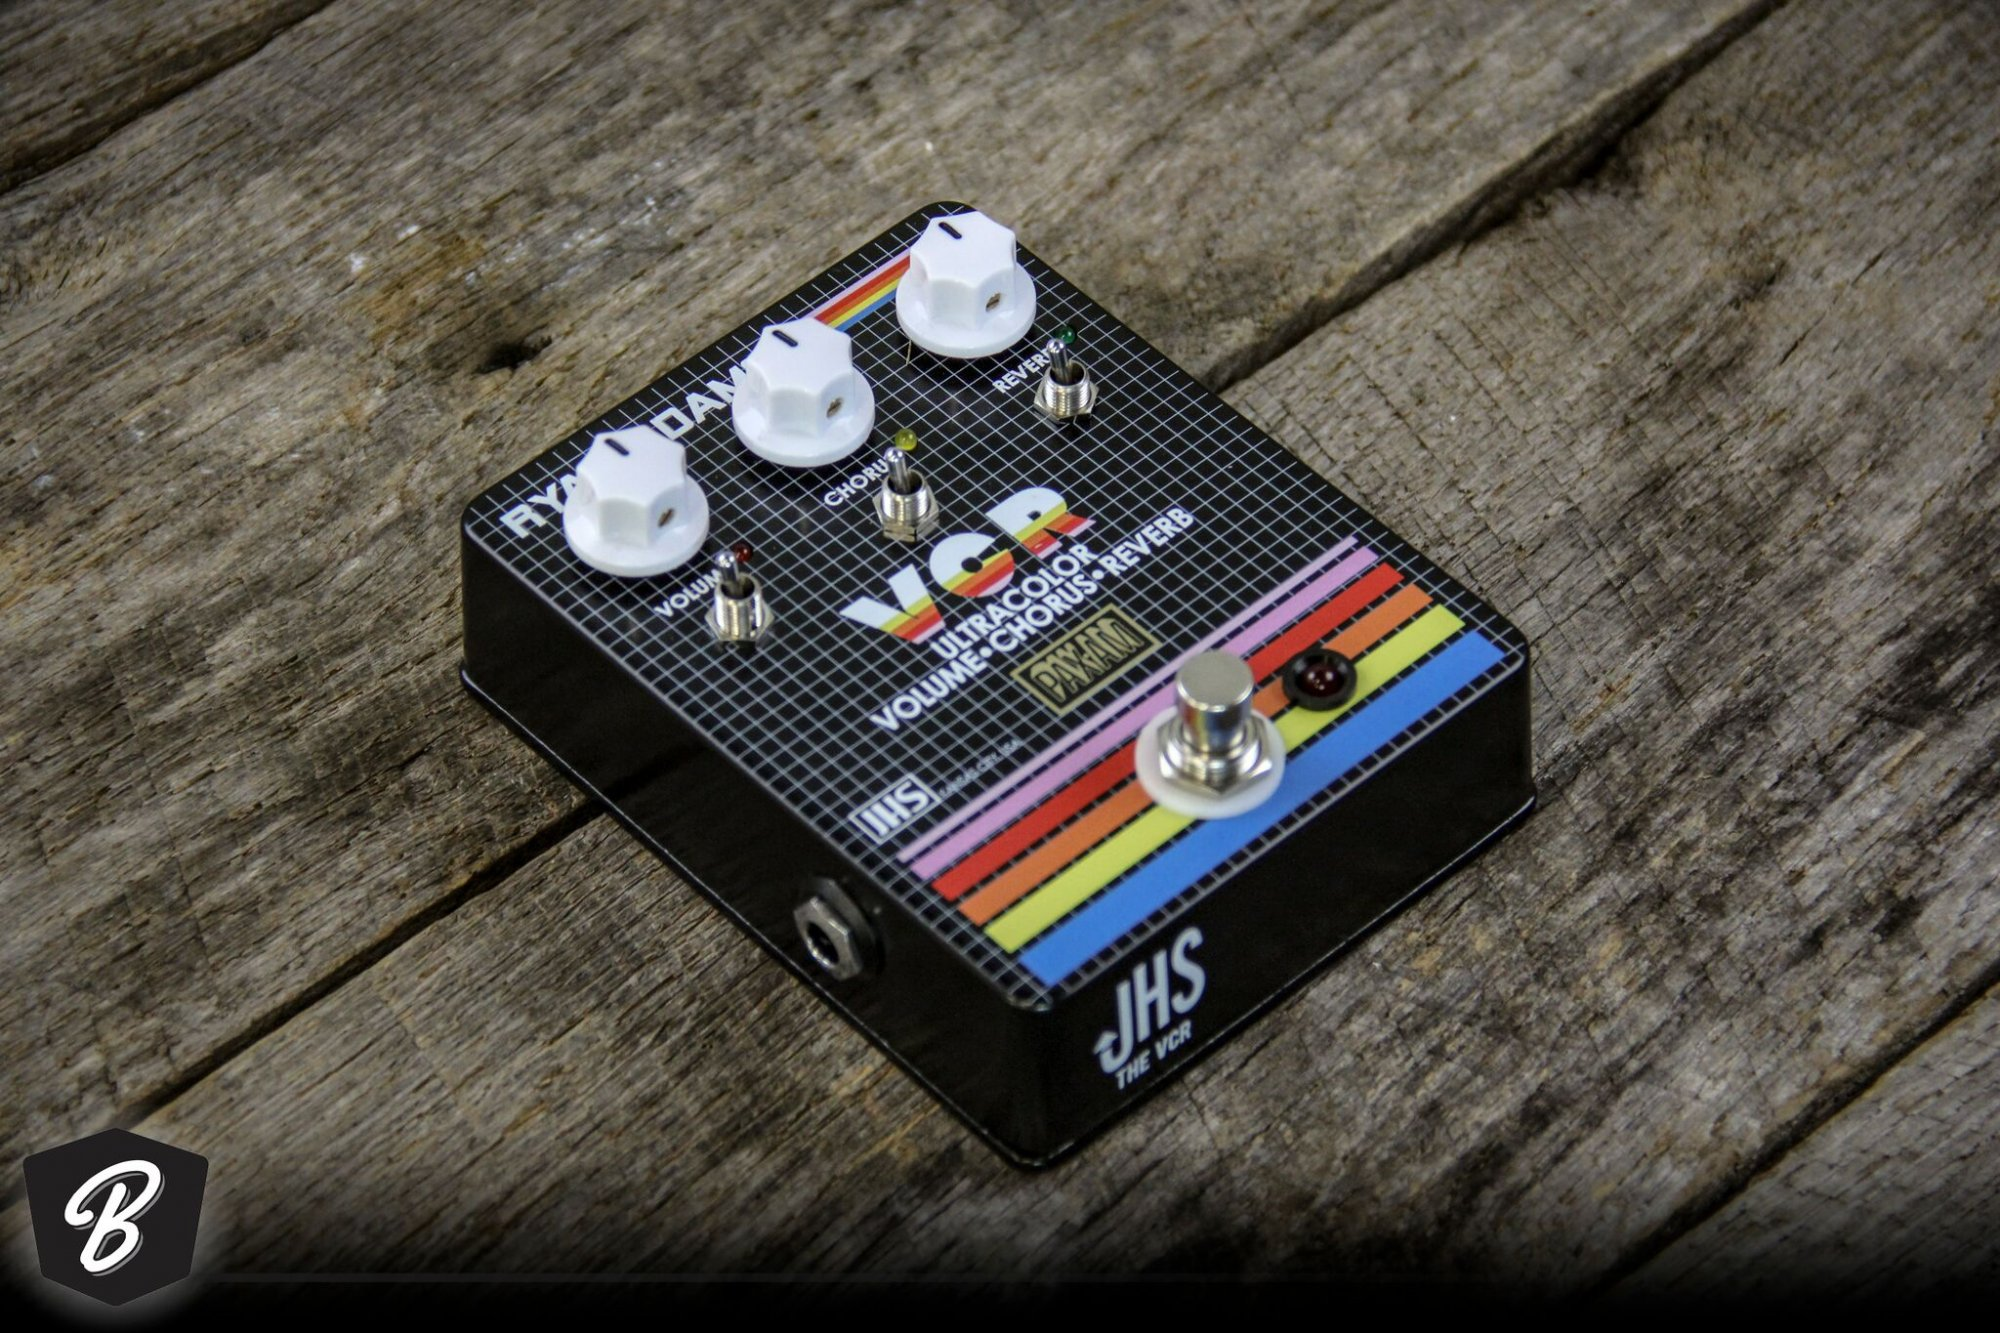 JHS VCR Ultracolor VCR Signature Ryan Adams pedal